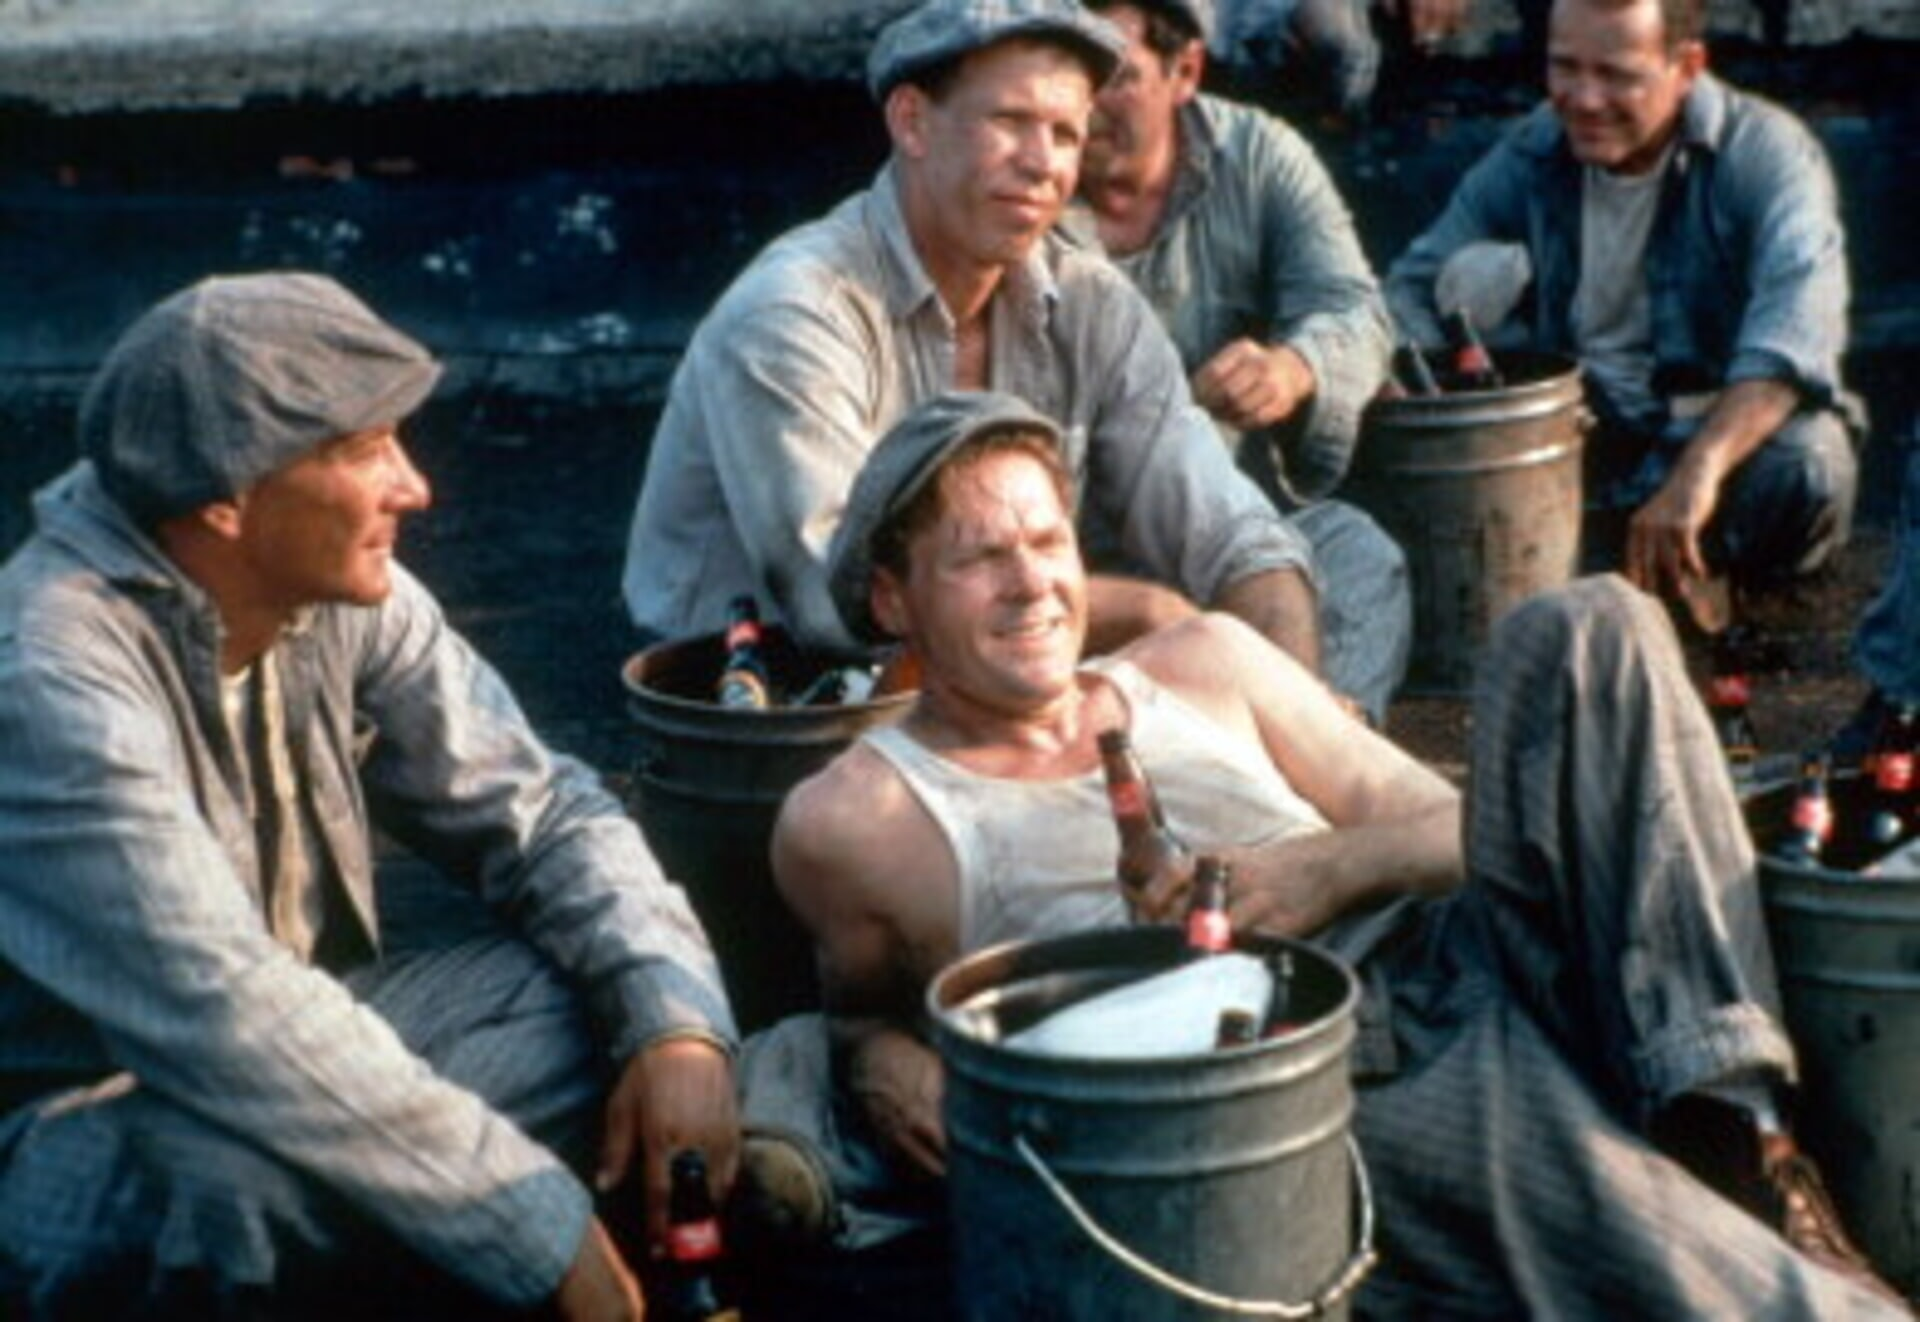 The Shawshank Redemption - Image 1